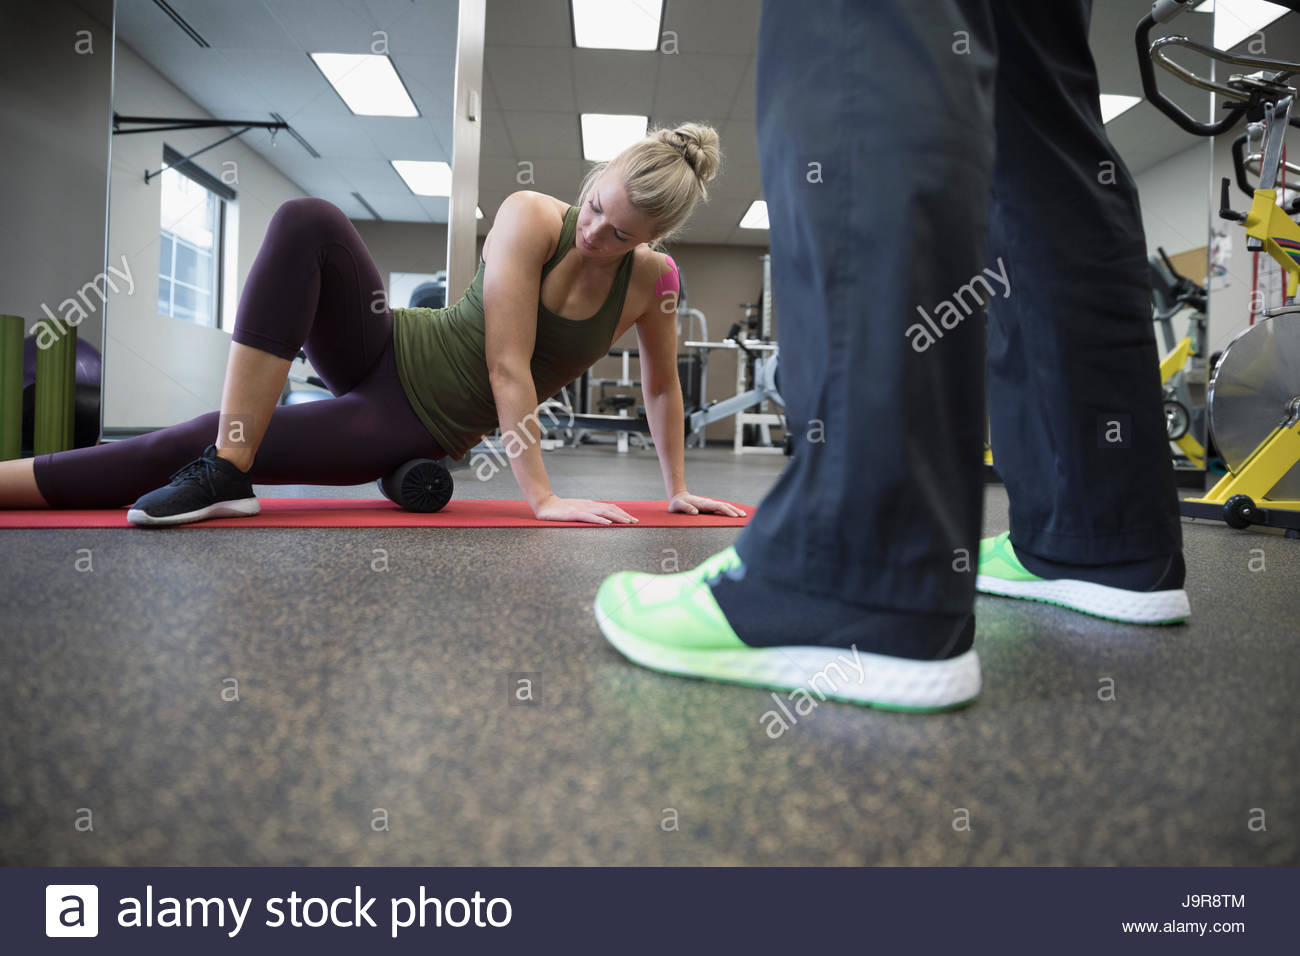 Woman stretching, exercising in gym - Stock Image